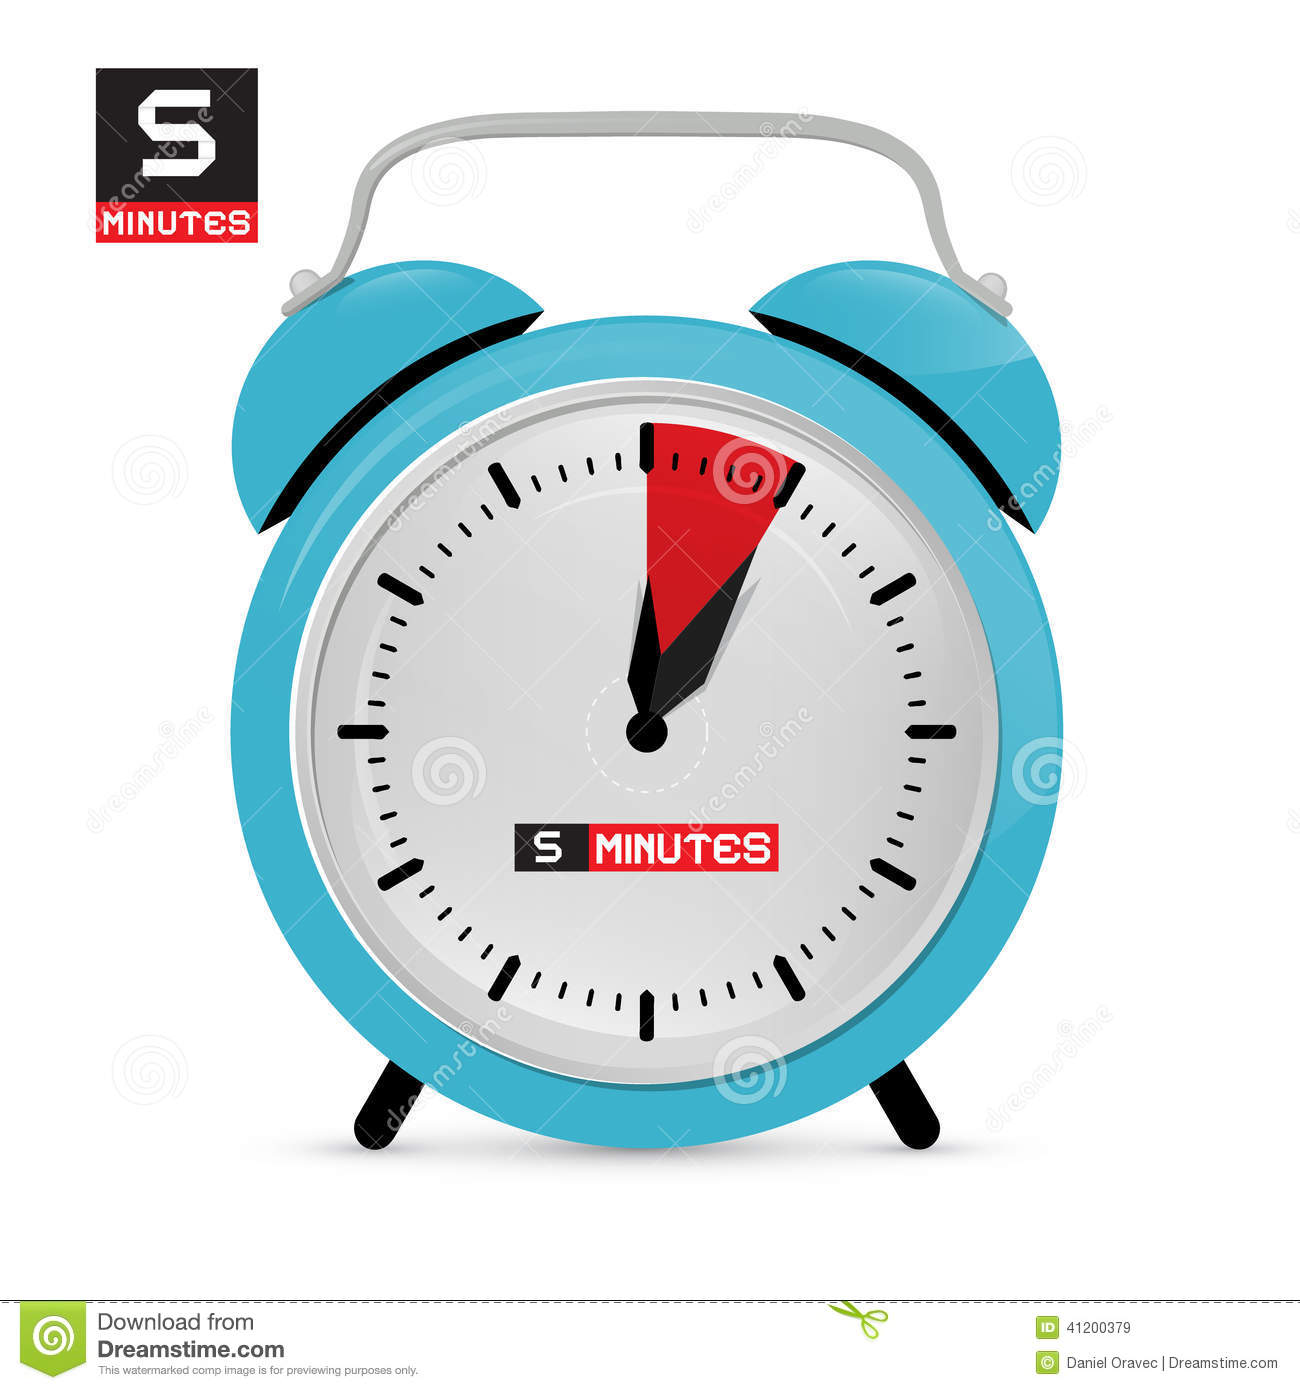 Five 5 Minutes Alarm Clock Stock Vector Illustration Of